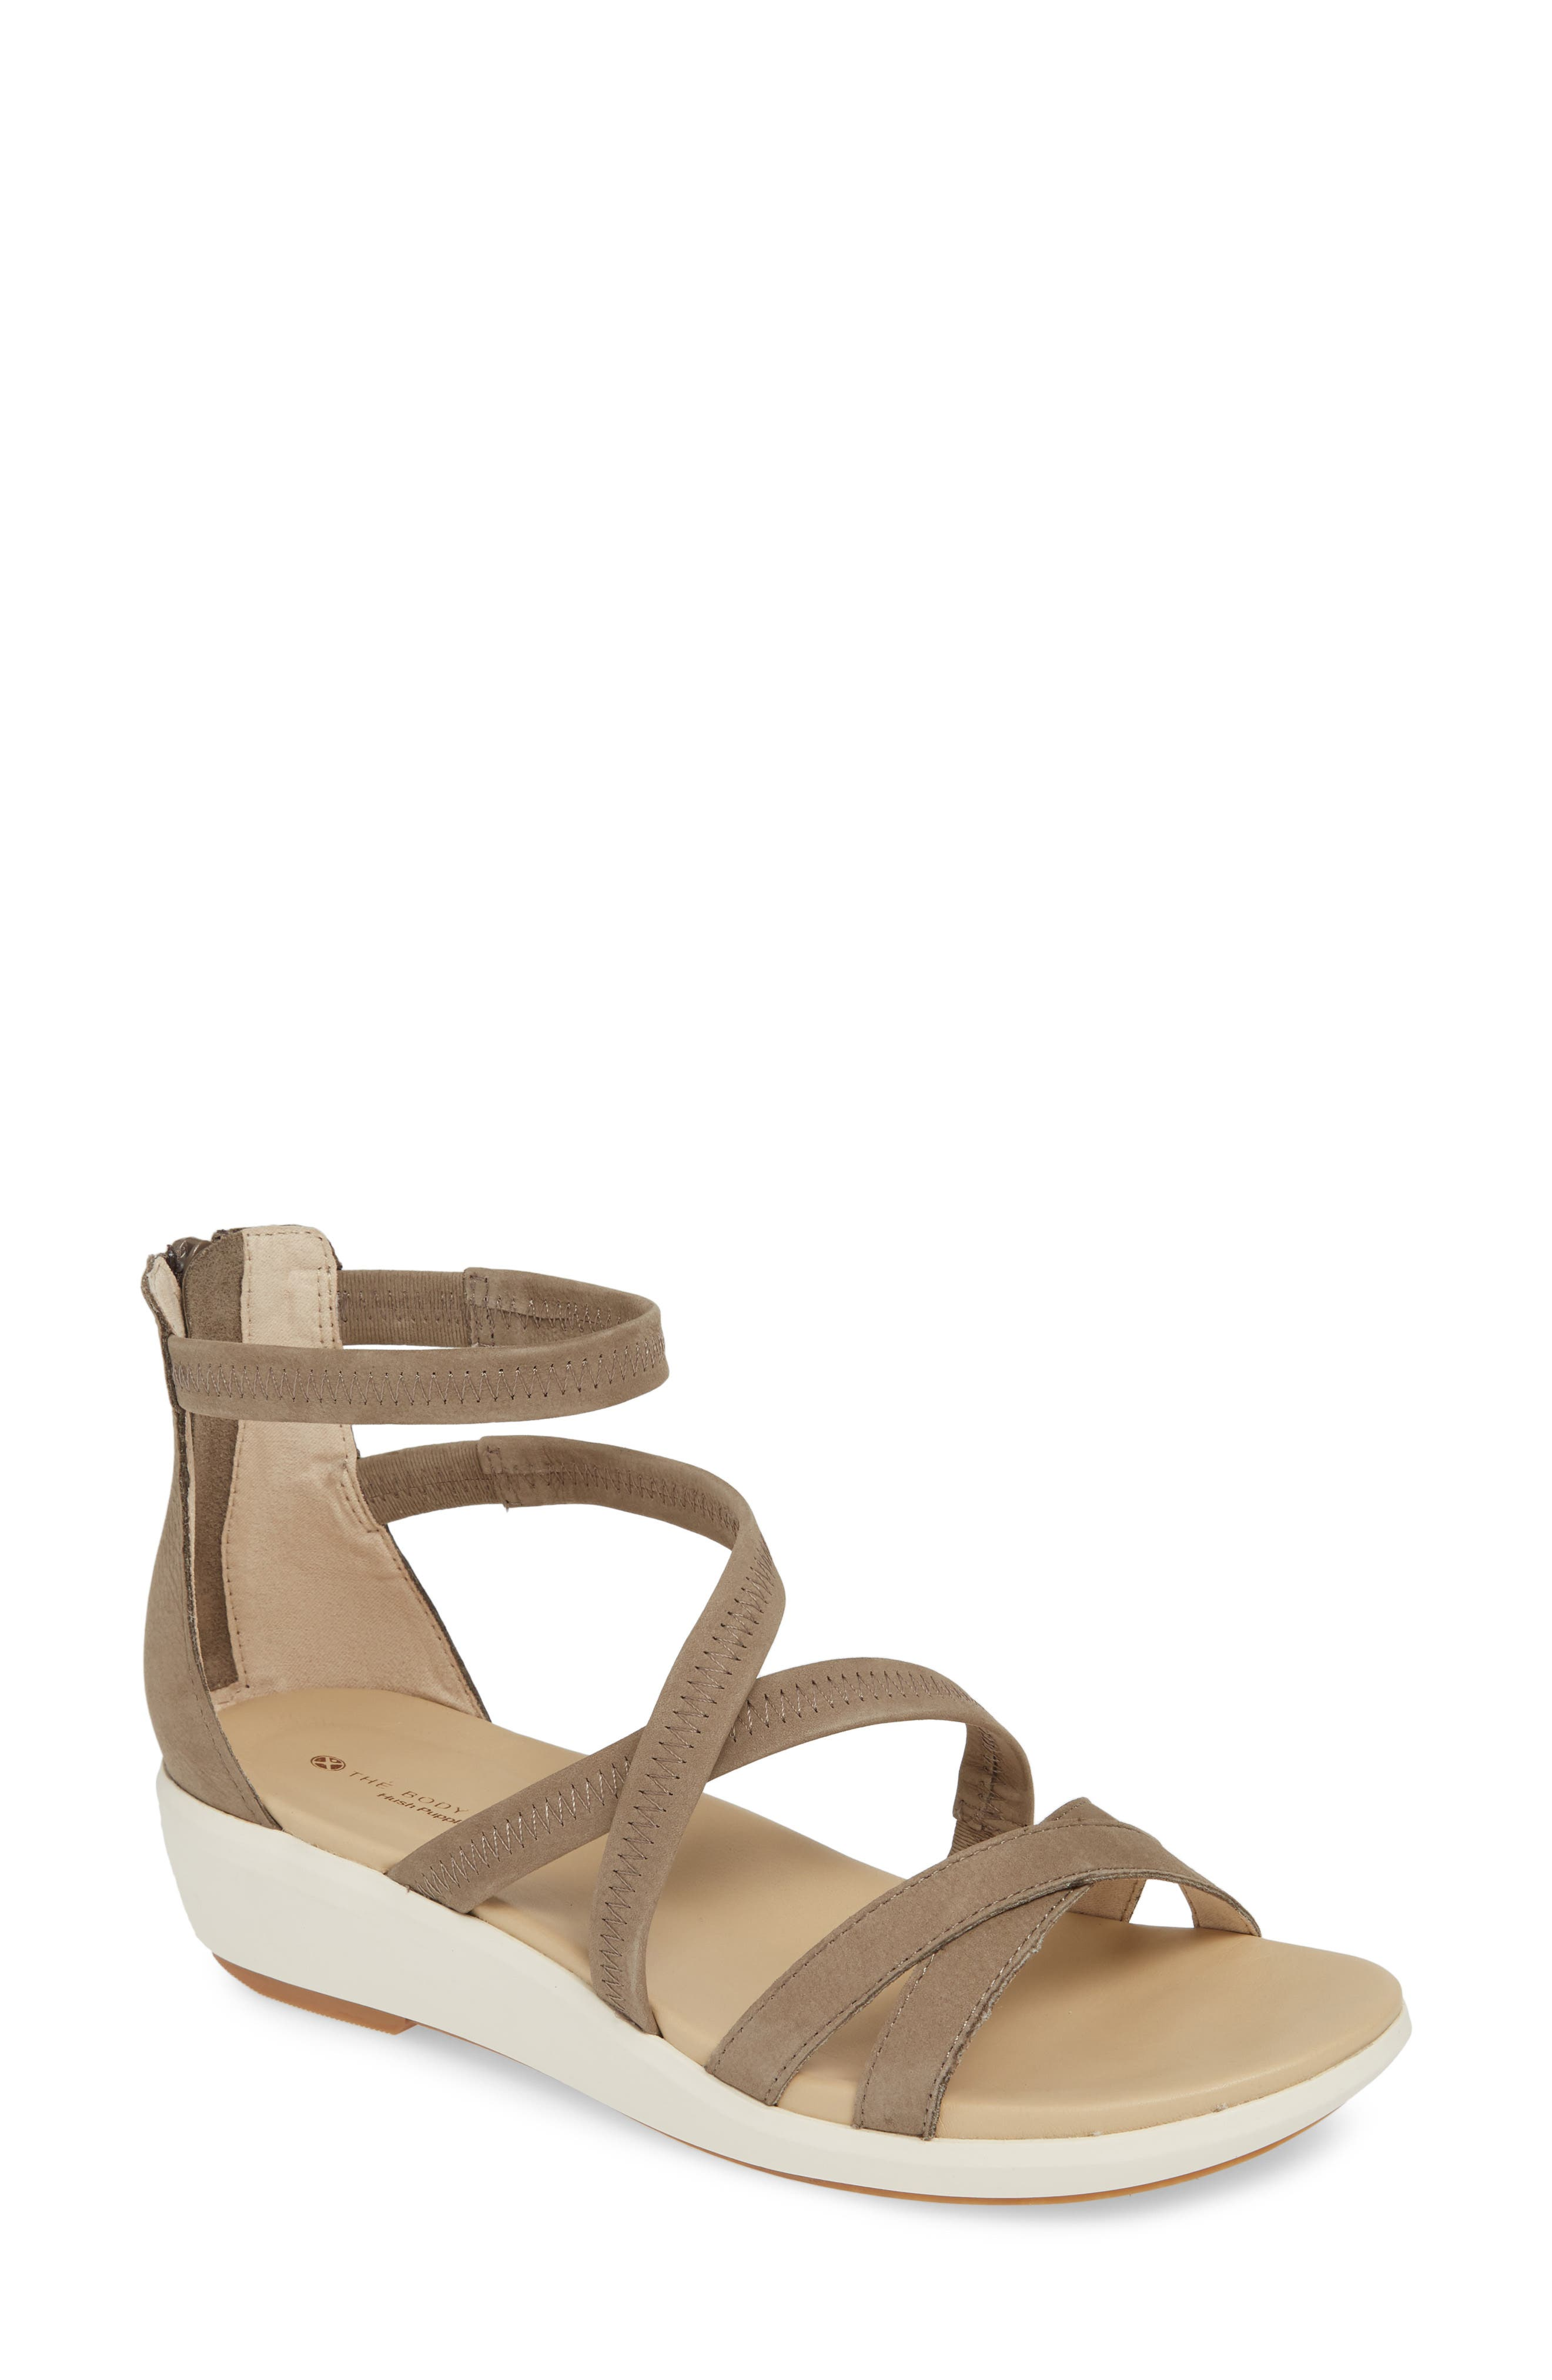 Slim crisscross straps style a breezy wedge sandal designed with an anatomically contoured footbed and BioBevel heel and toe for a natural, balanced stride. Style Name: Hush Puppies Lyricale Wedge Sandal (Women). Style Number: 5783916. Available in stores.